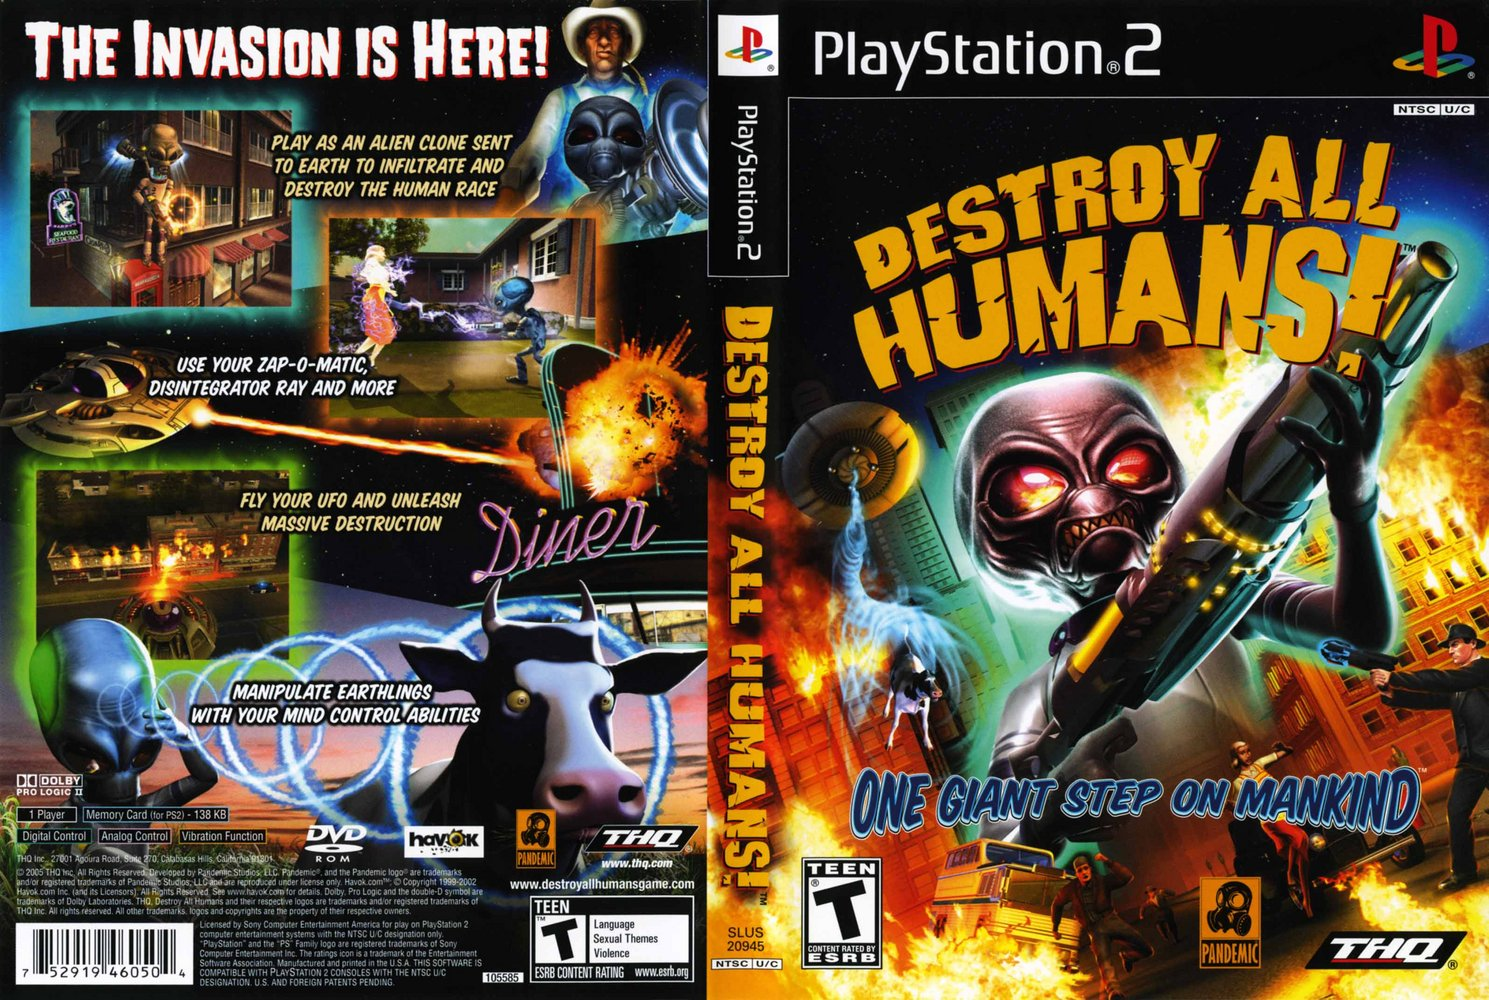 Destroy all humans free porn softcore natural women